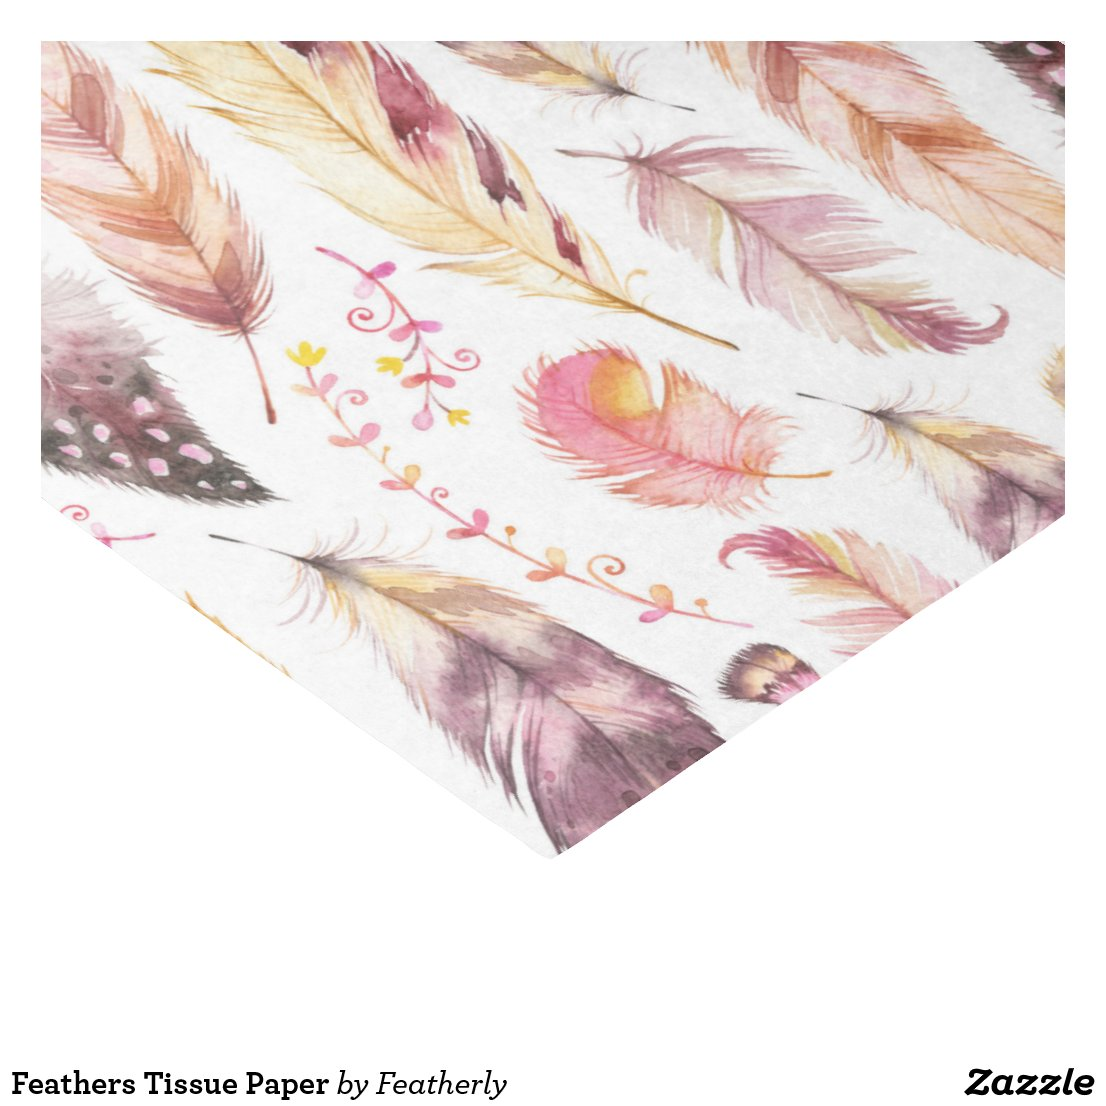 Feathers Tissue Paper